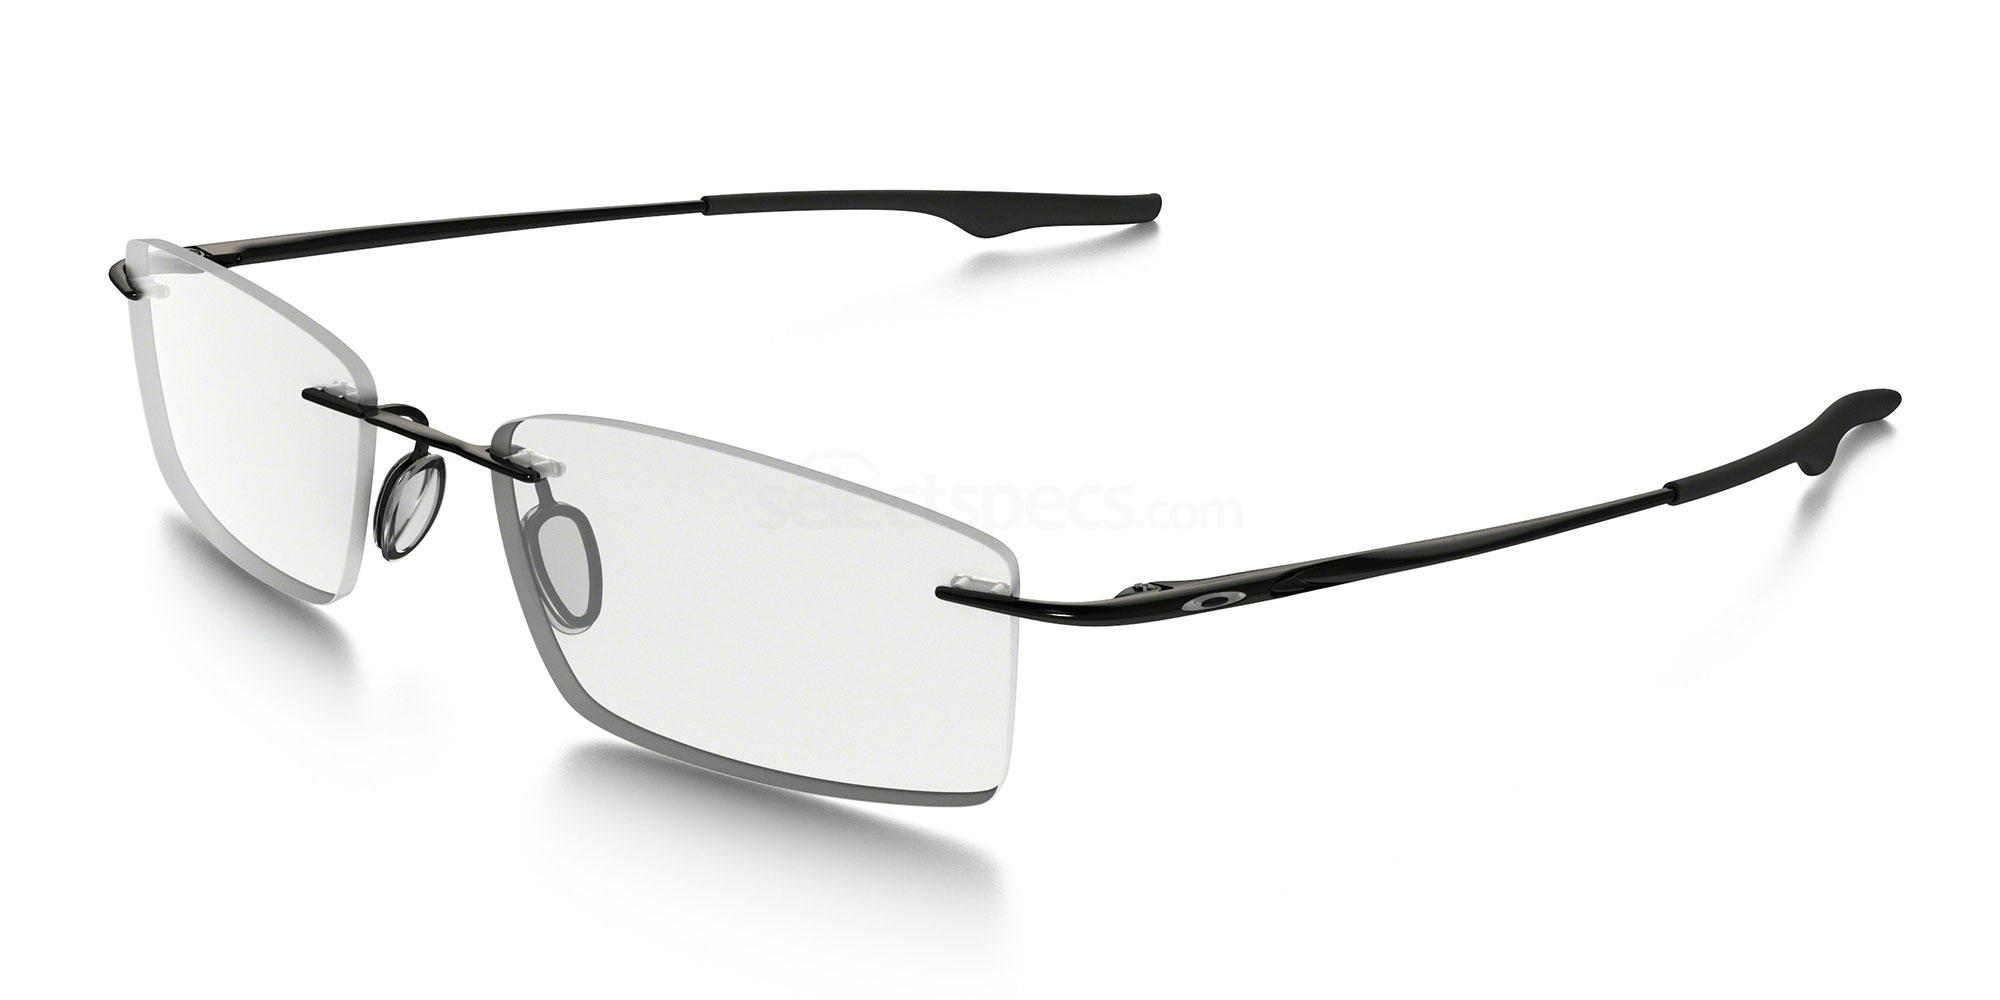 Oakley OX3122 KEEL glasses